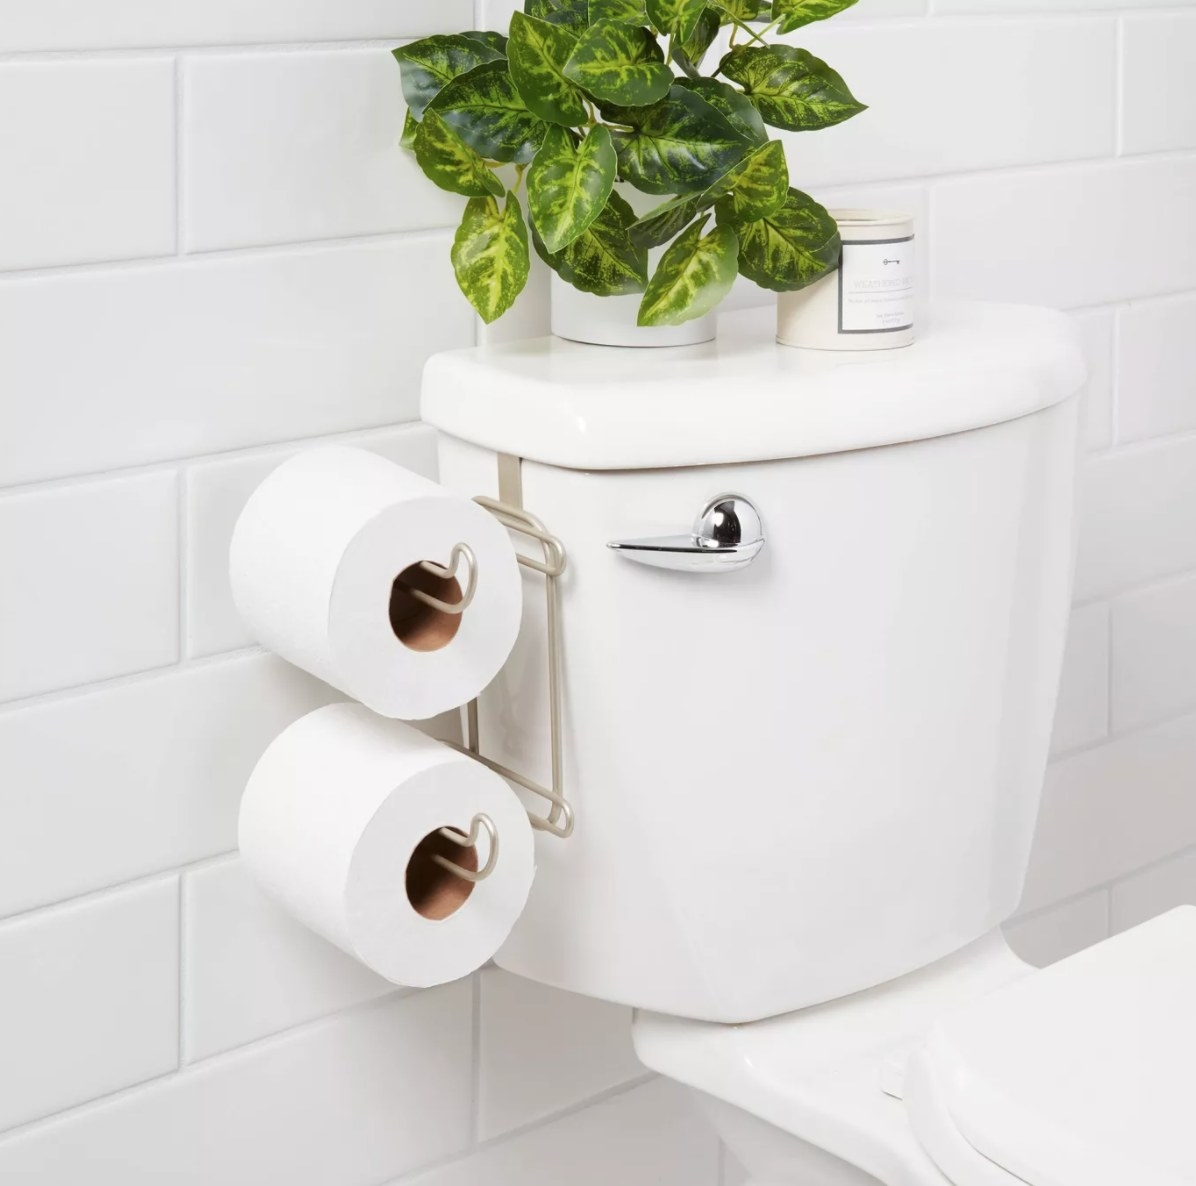 A metal toilet roll holder that hangs from the toilet